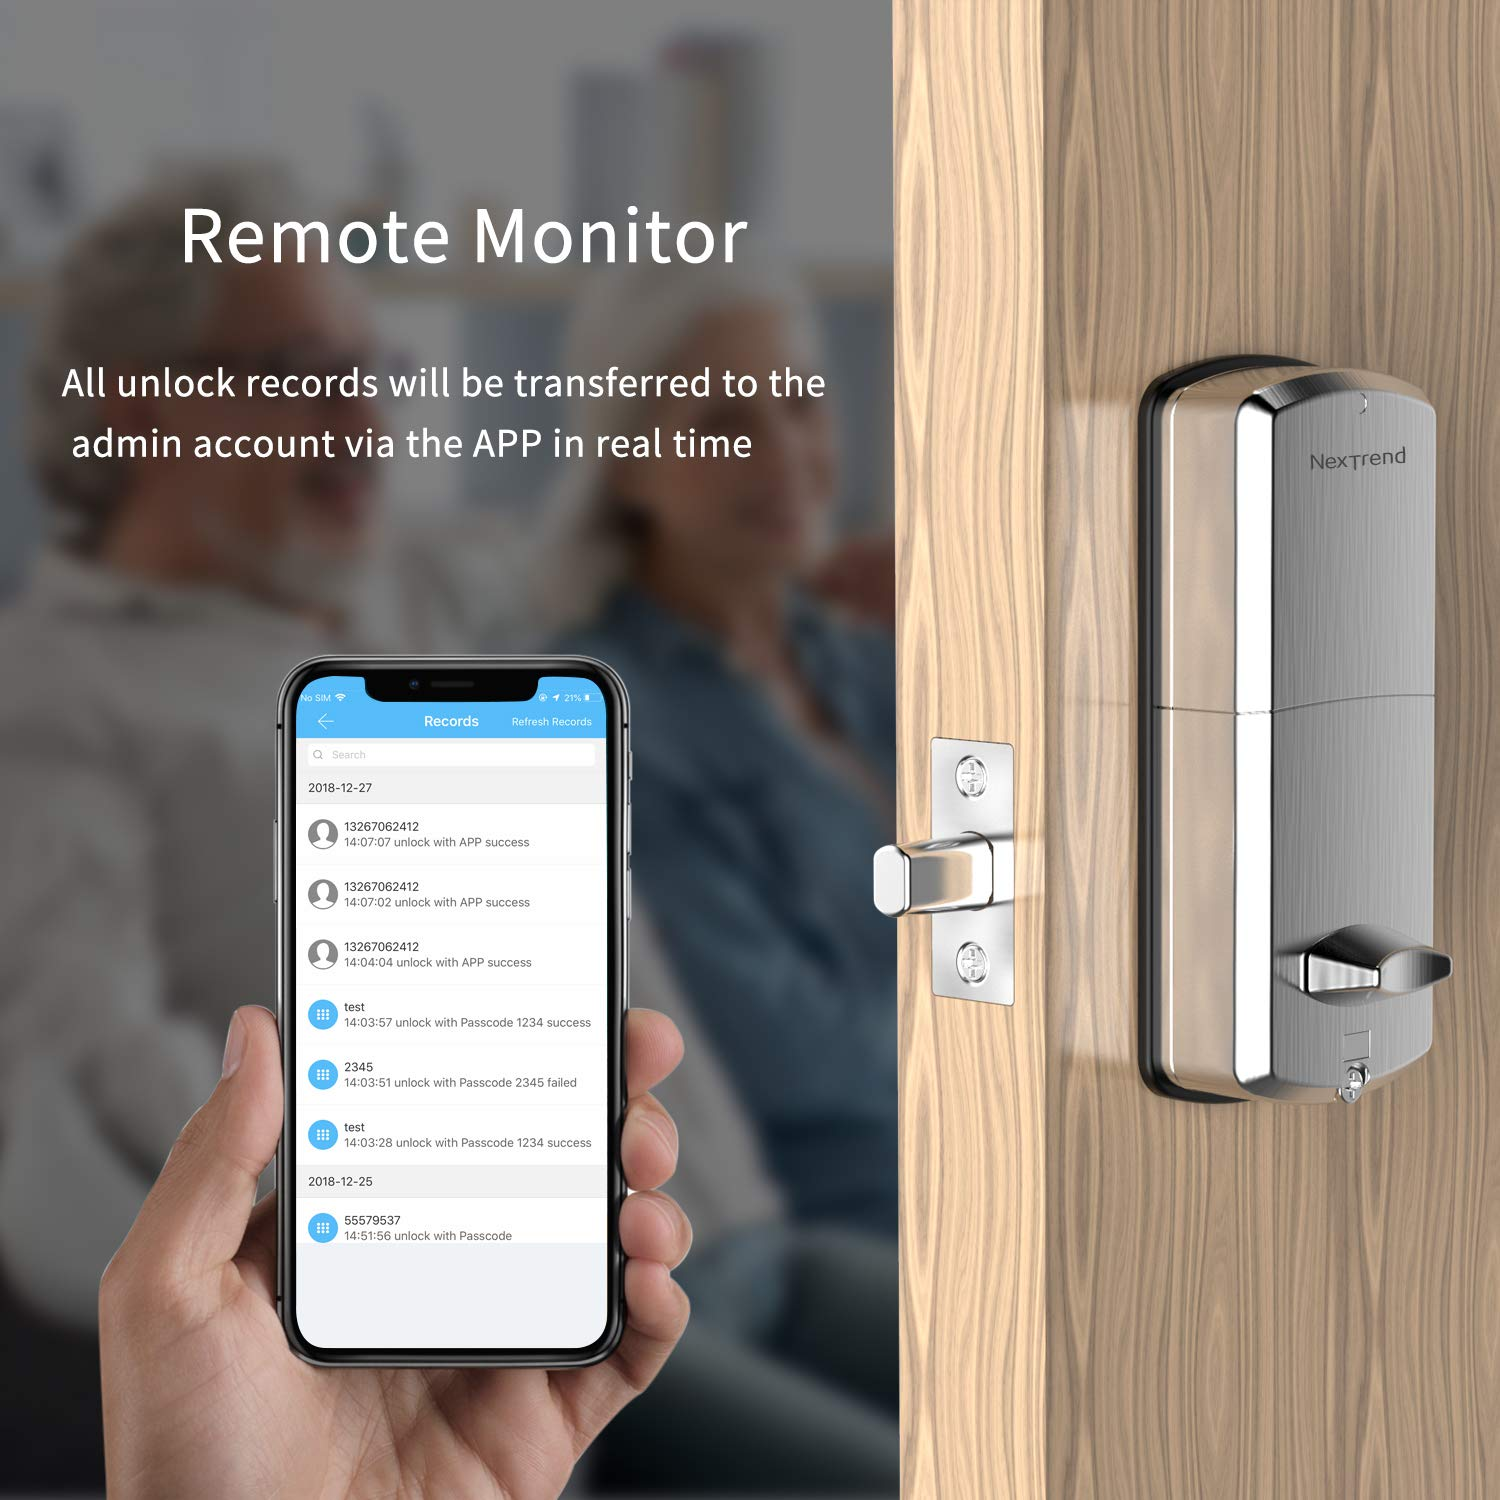 [Newest]Smart Lock, NexTrend Smart Electronic Door Lock with Bluetooth Keyless, Touchscreen, Mechanical Keys Enabled Auto Lock Alarm Technology for Home, Hotel, Apartment, Silver by NexTrend (Image #5)